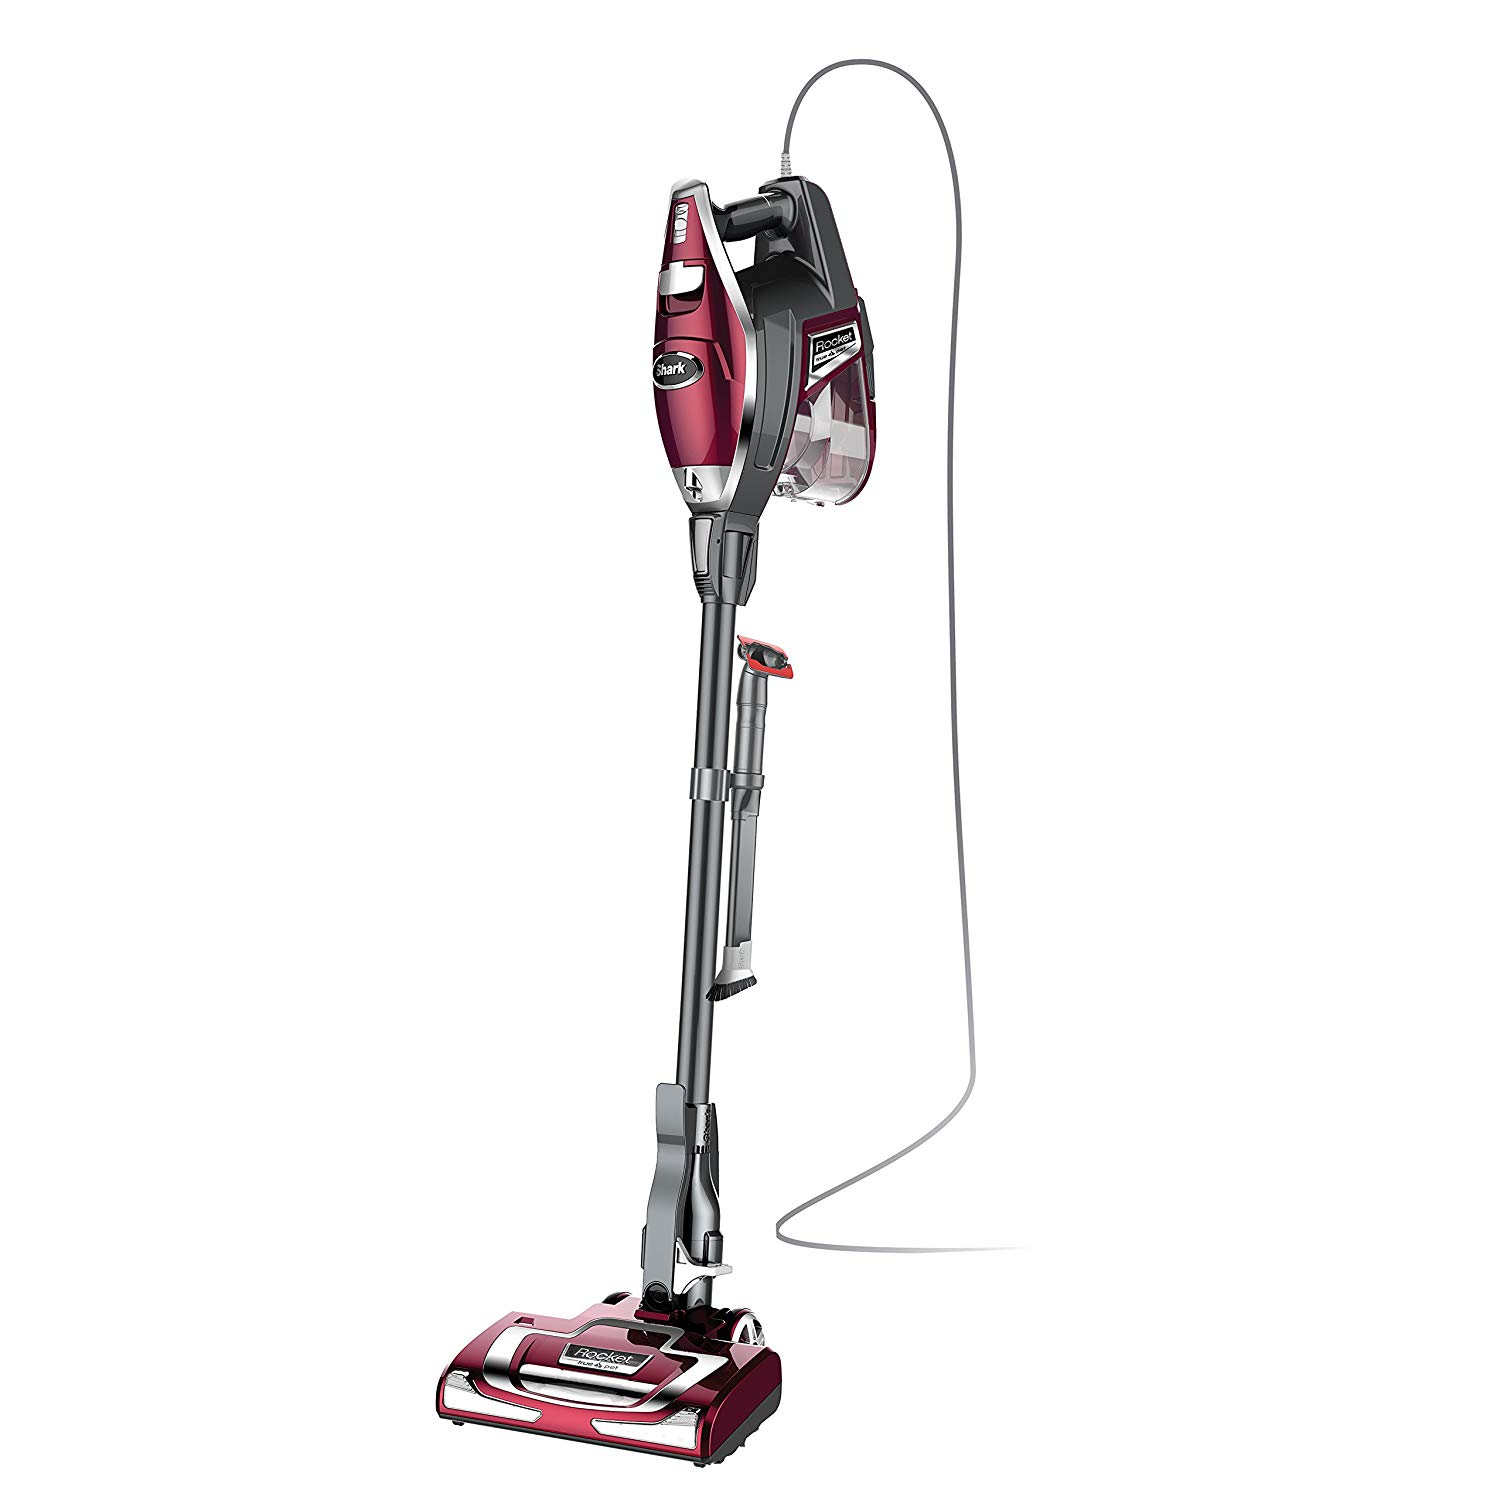 Shark rocket true pet ultra-light corded Bag less vacuum converts to hand vacuum with pet tool and hard floor hero attachment (HV322), red